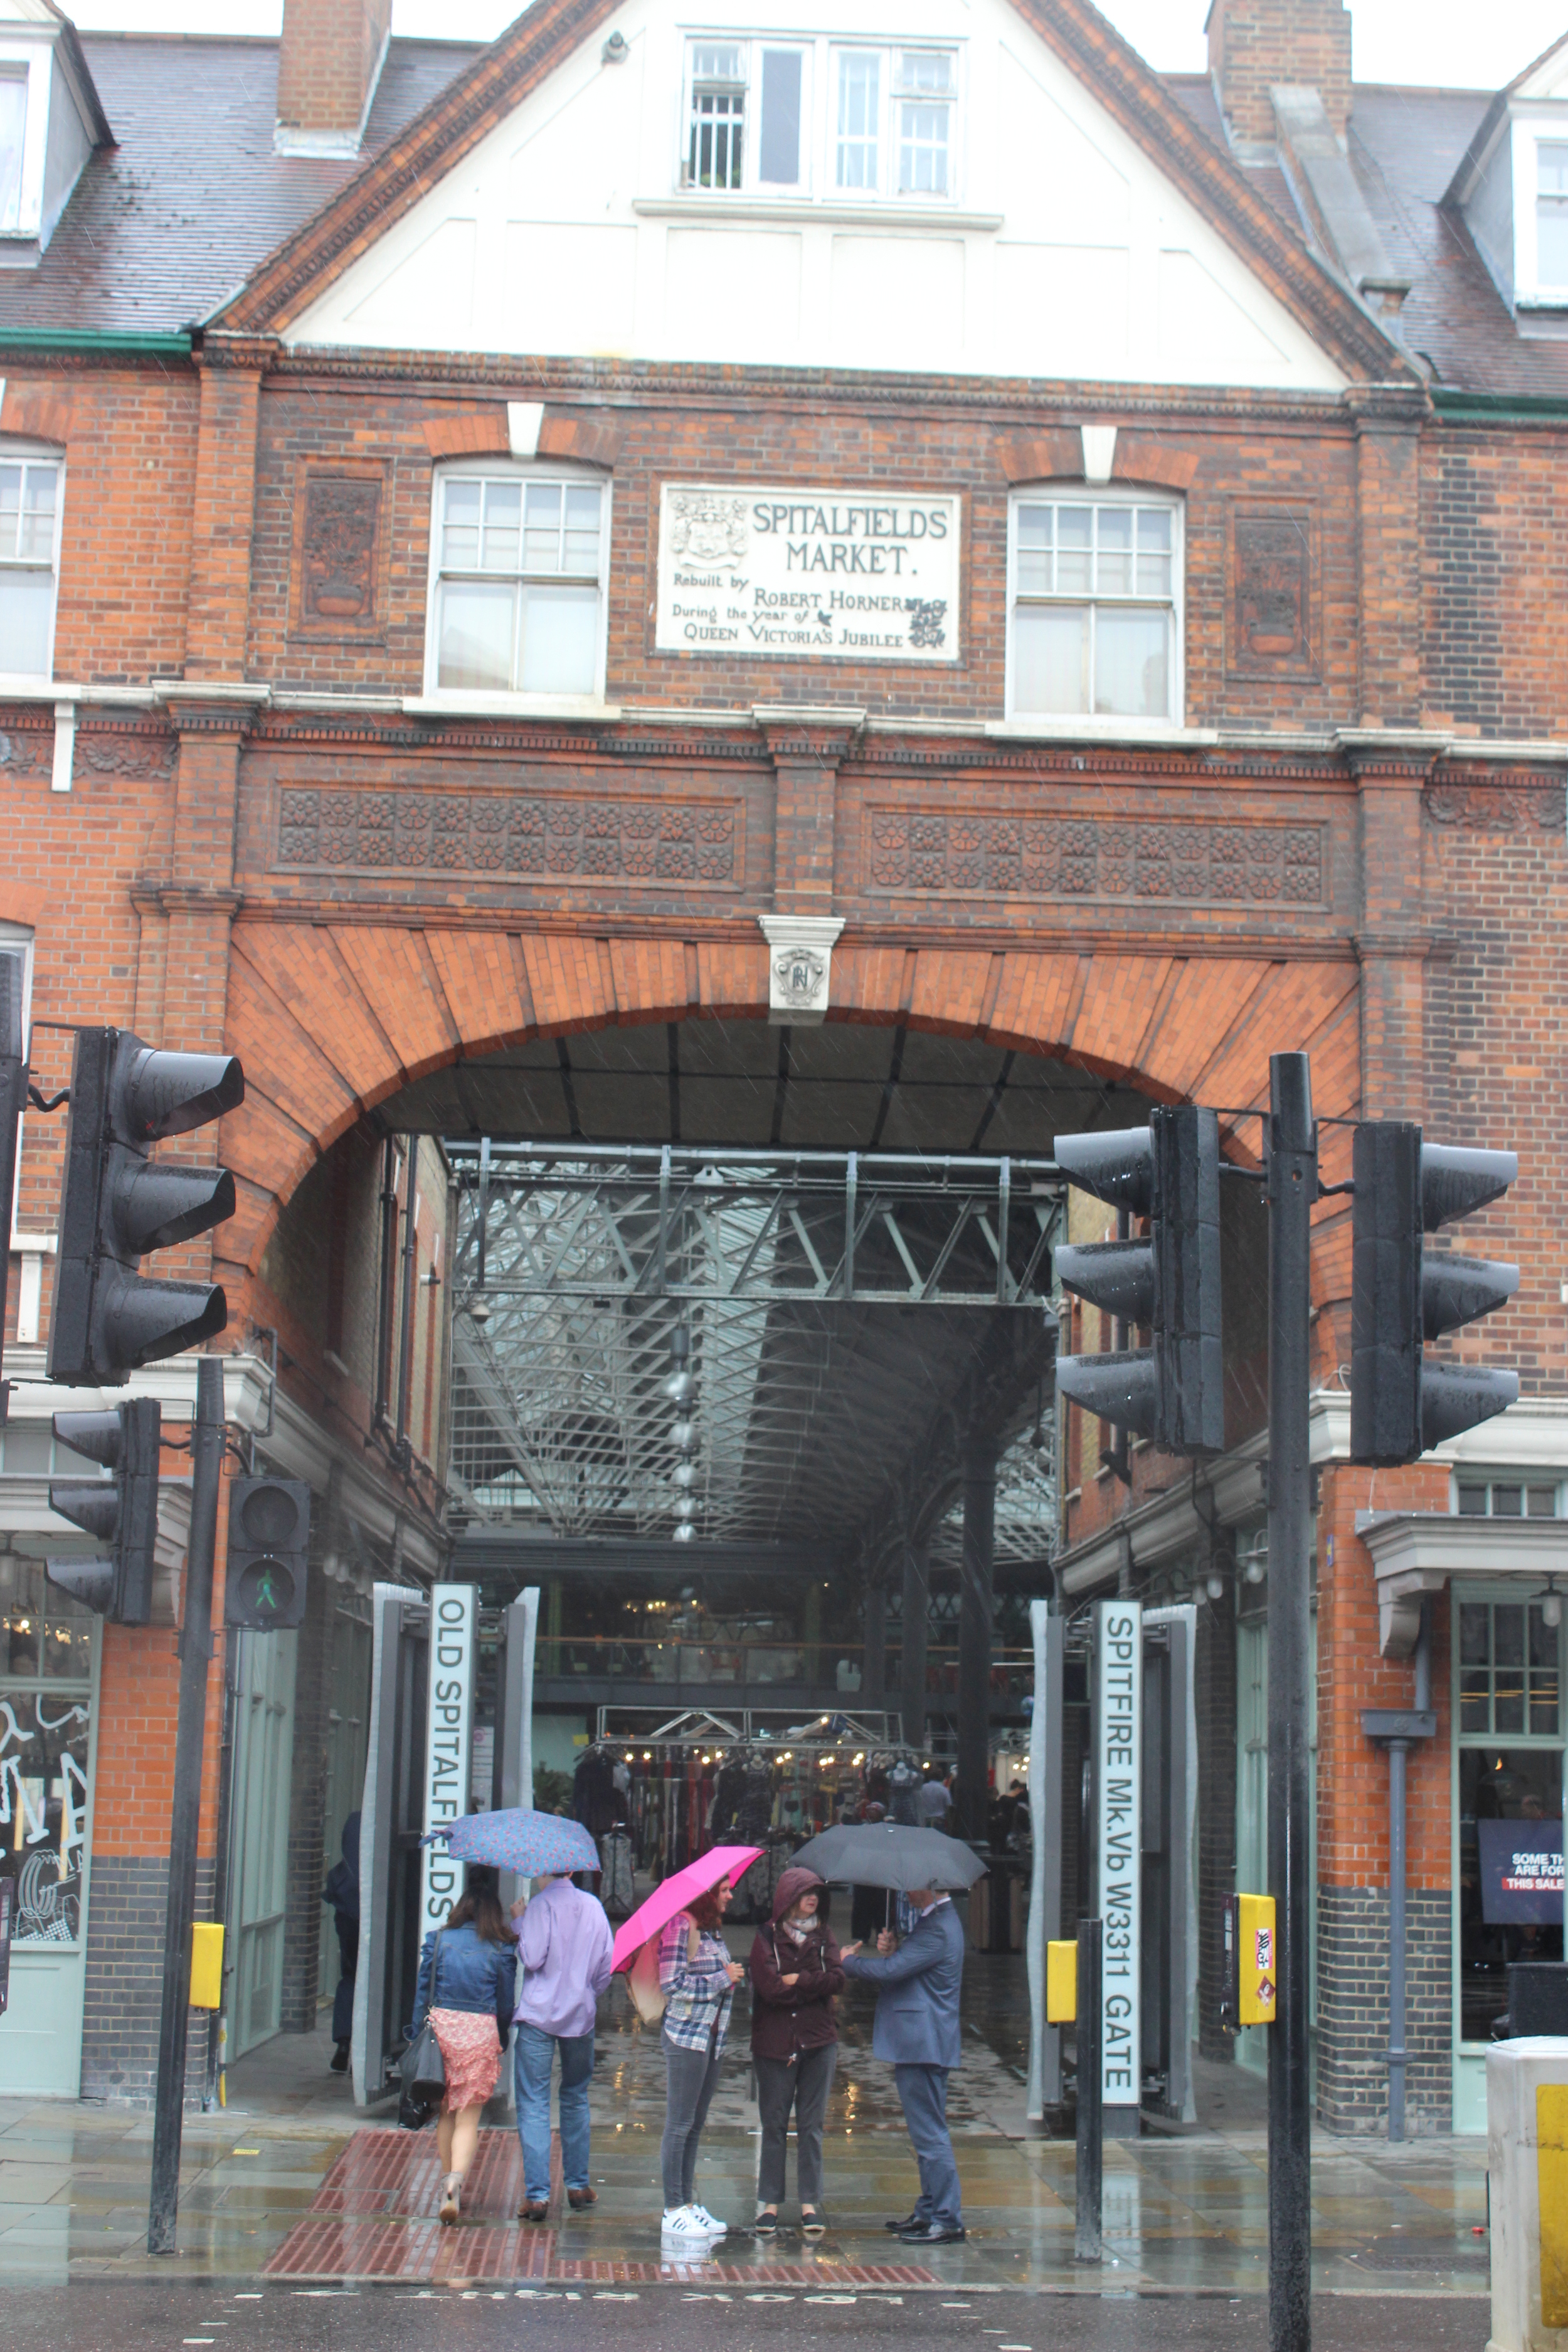 When it rains, Spitalfields market is just a stones throw away, for all your undercover shopping needs!